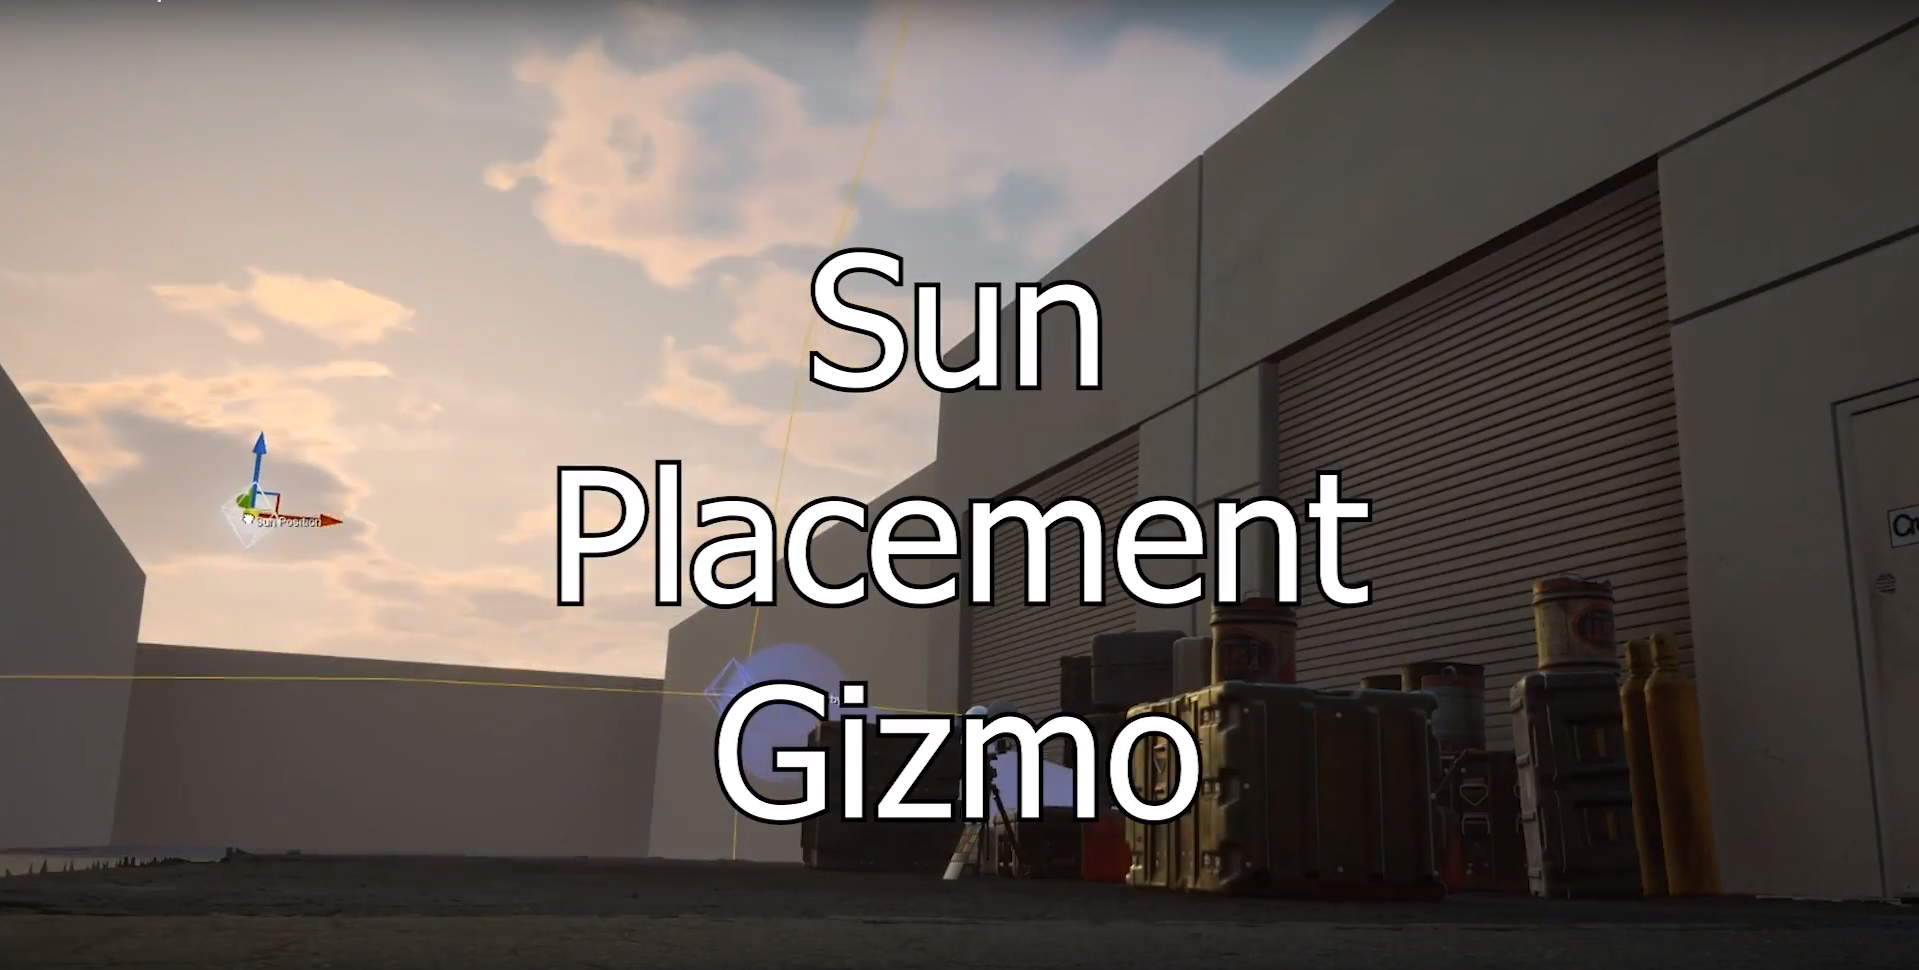 The Sun Placement Gizmo is an intuitive way to place your sun wherever you'd like. Horizon has been modified to react more accurately, getting closer to real-life everyday.